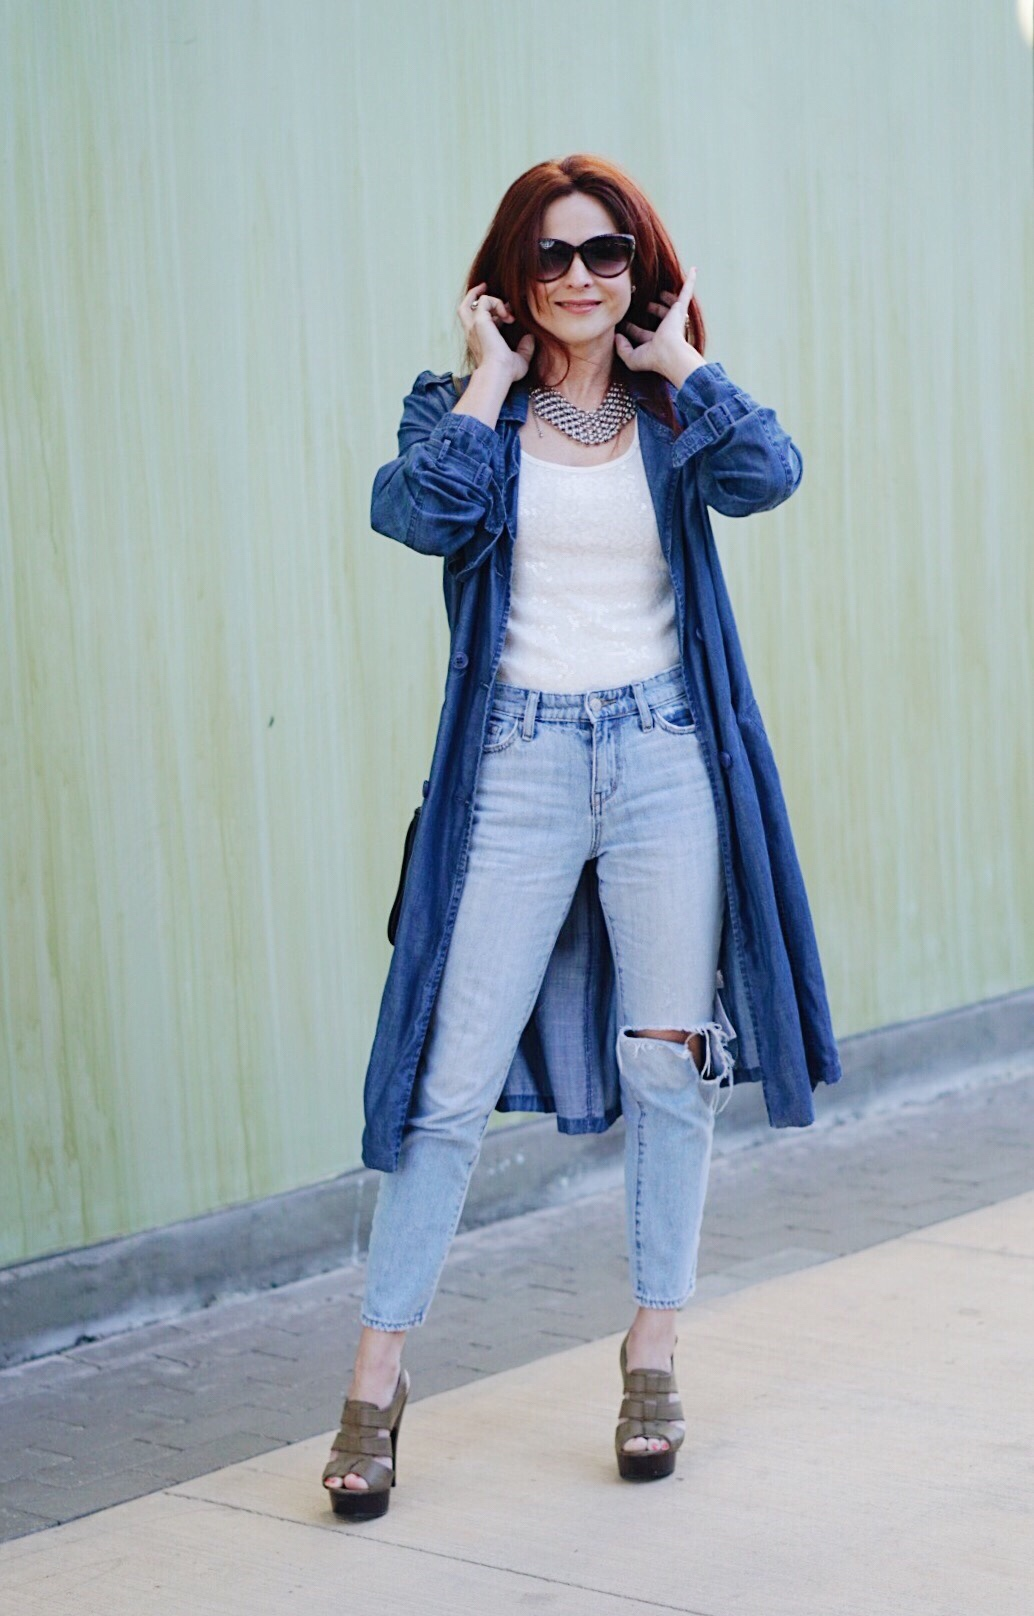 denim on denim, trench coat outfits, denim trench coats, how to style denims together